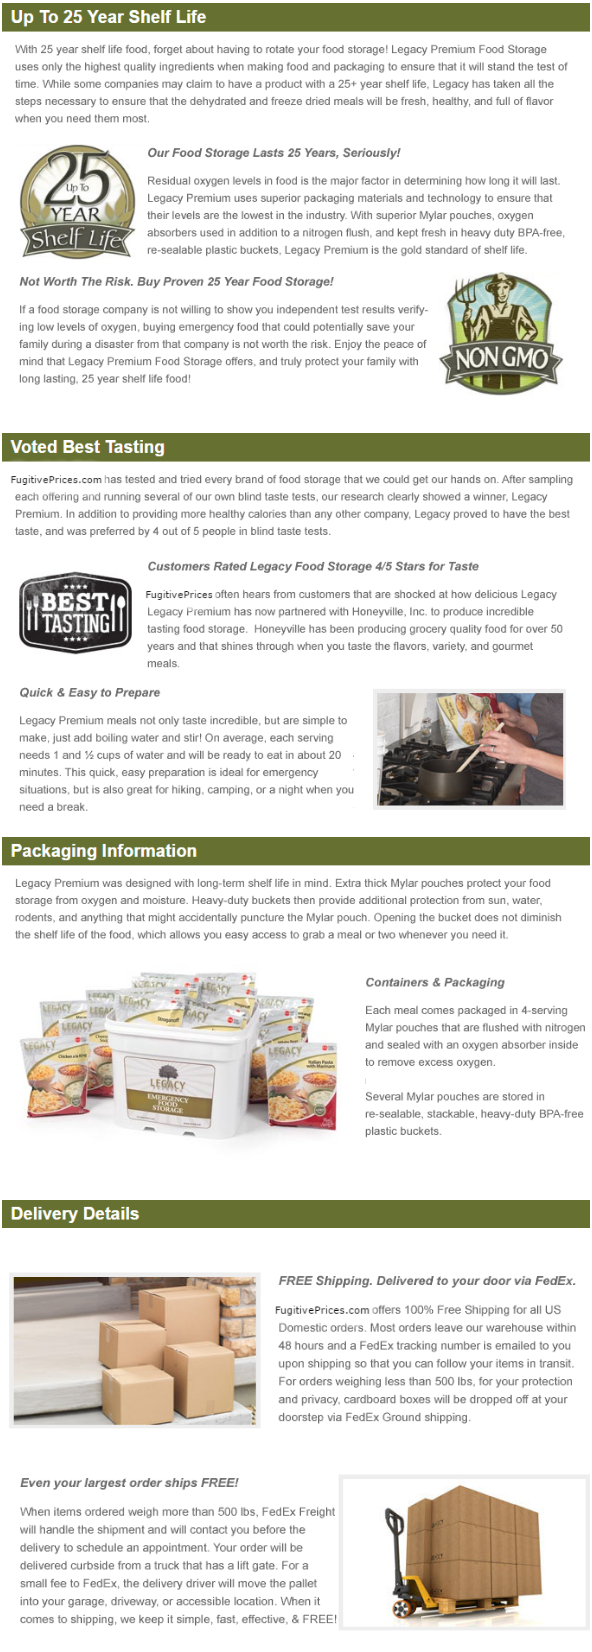 PRODUCT PACKAGING AND DELIVERY INFORMATION